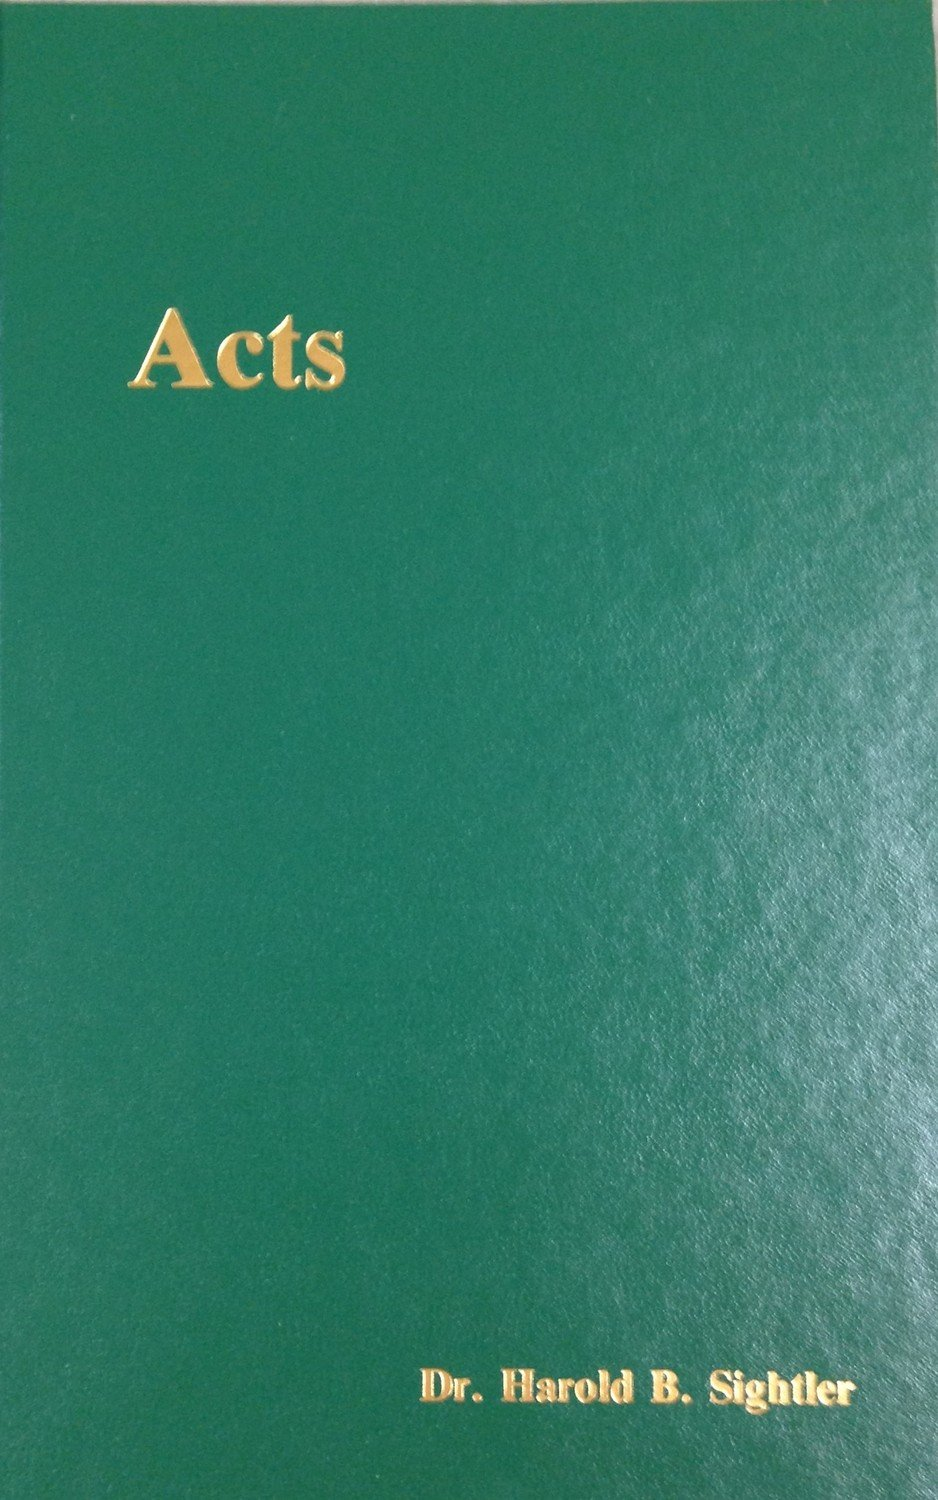 Acts by Dr. Harold B. Sightler